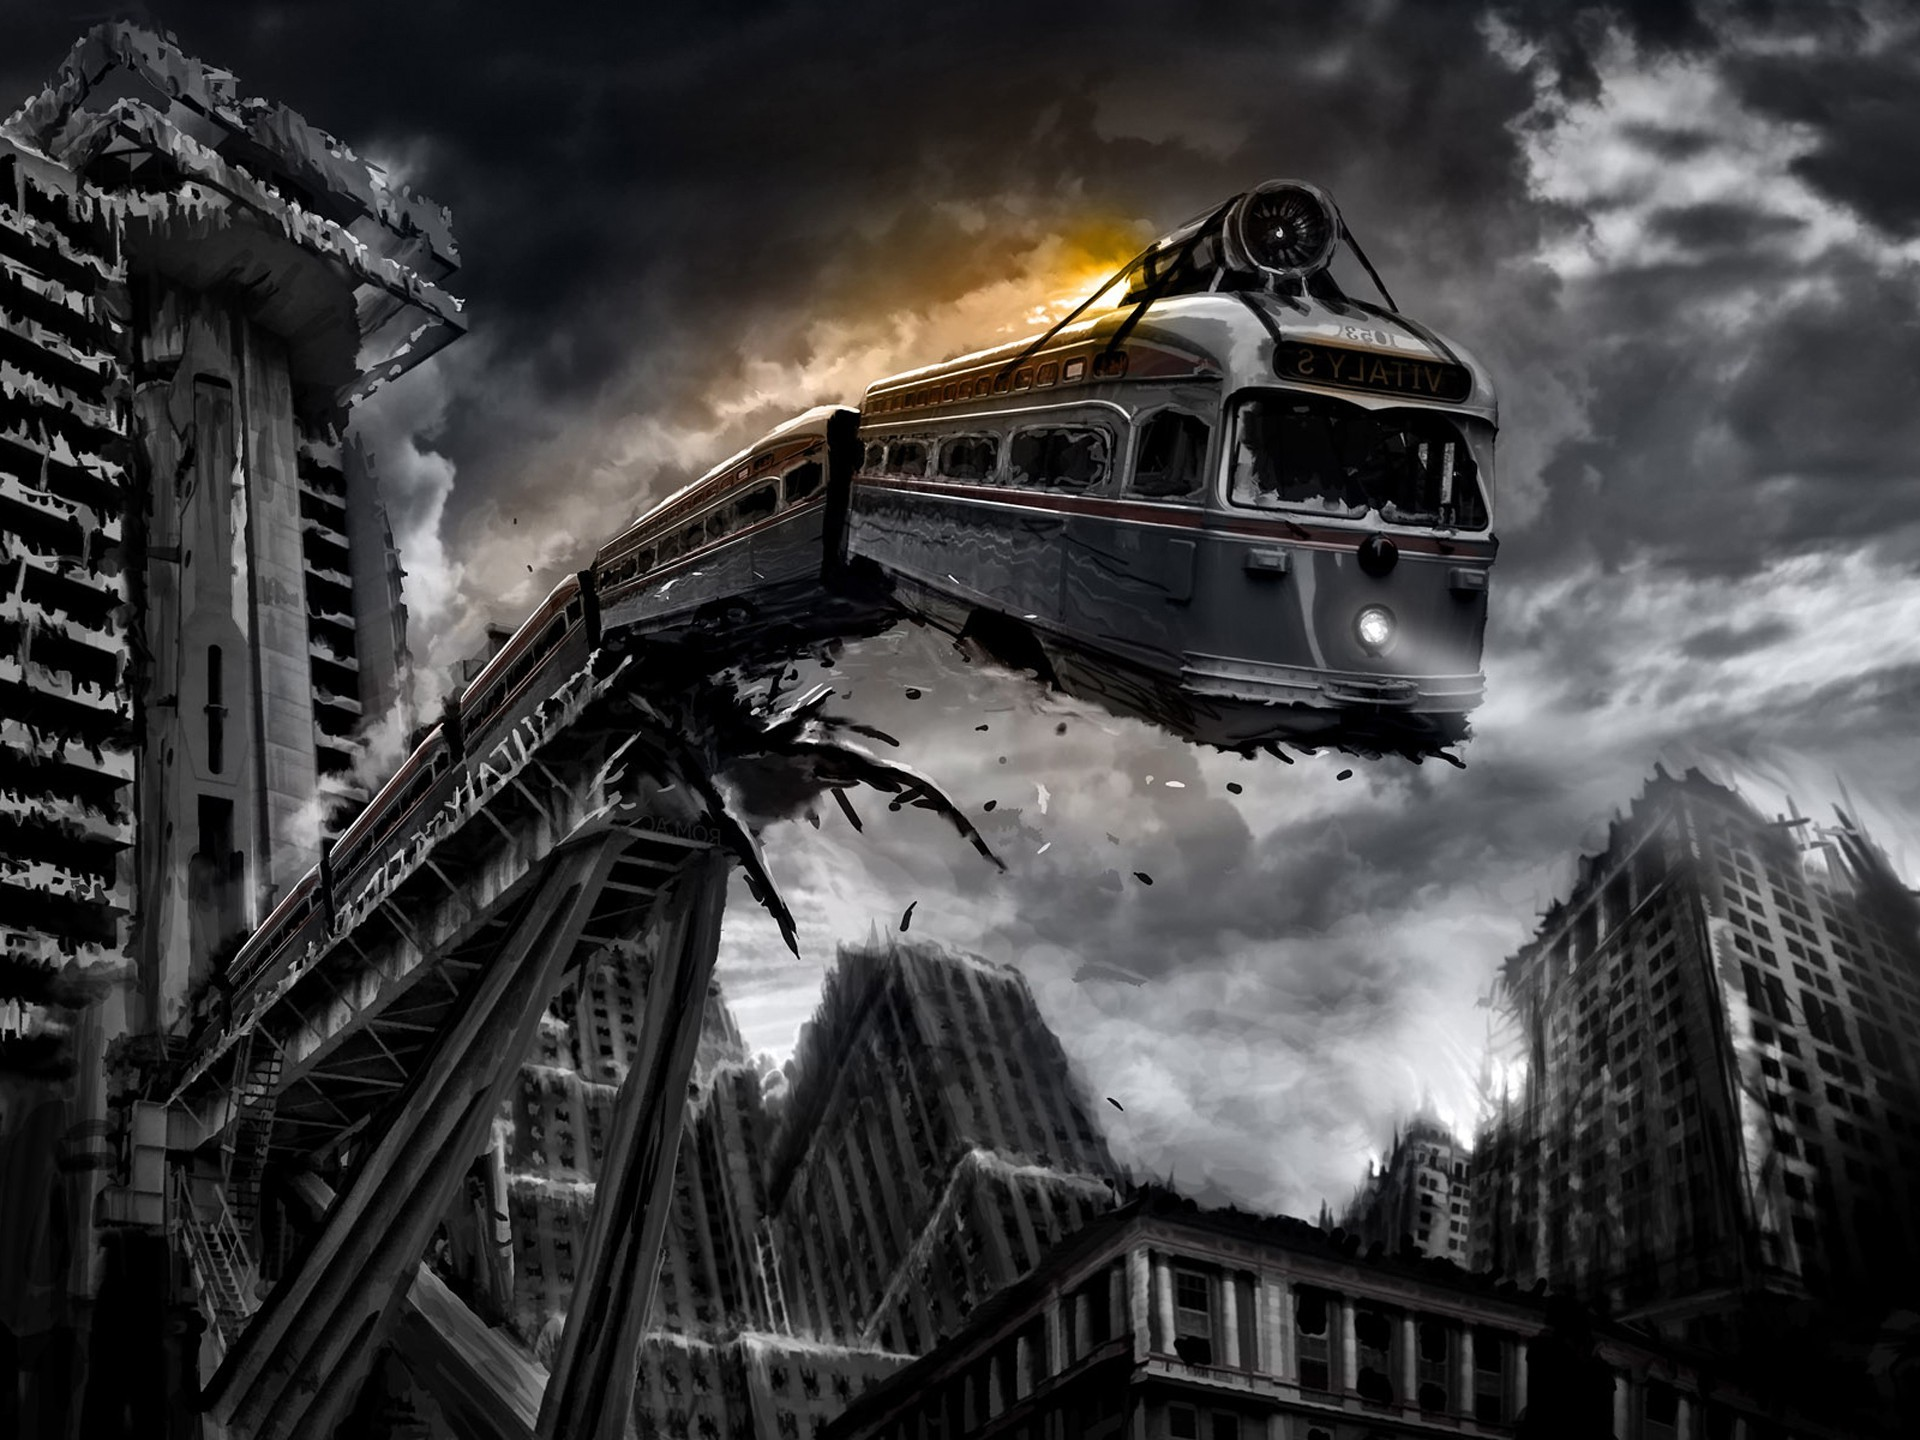 1920x1440 train, Monochrome, Apocalyptic, Digital Art, Romantically Apocalyptic  Wallpapers HD / Desktop and Mobile Backgrounds